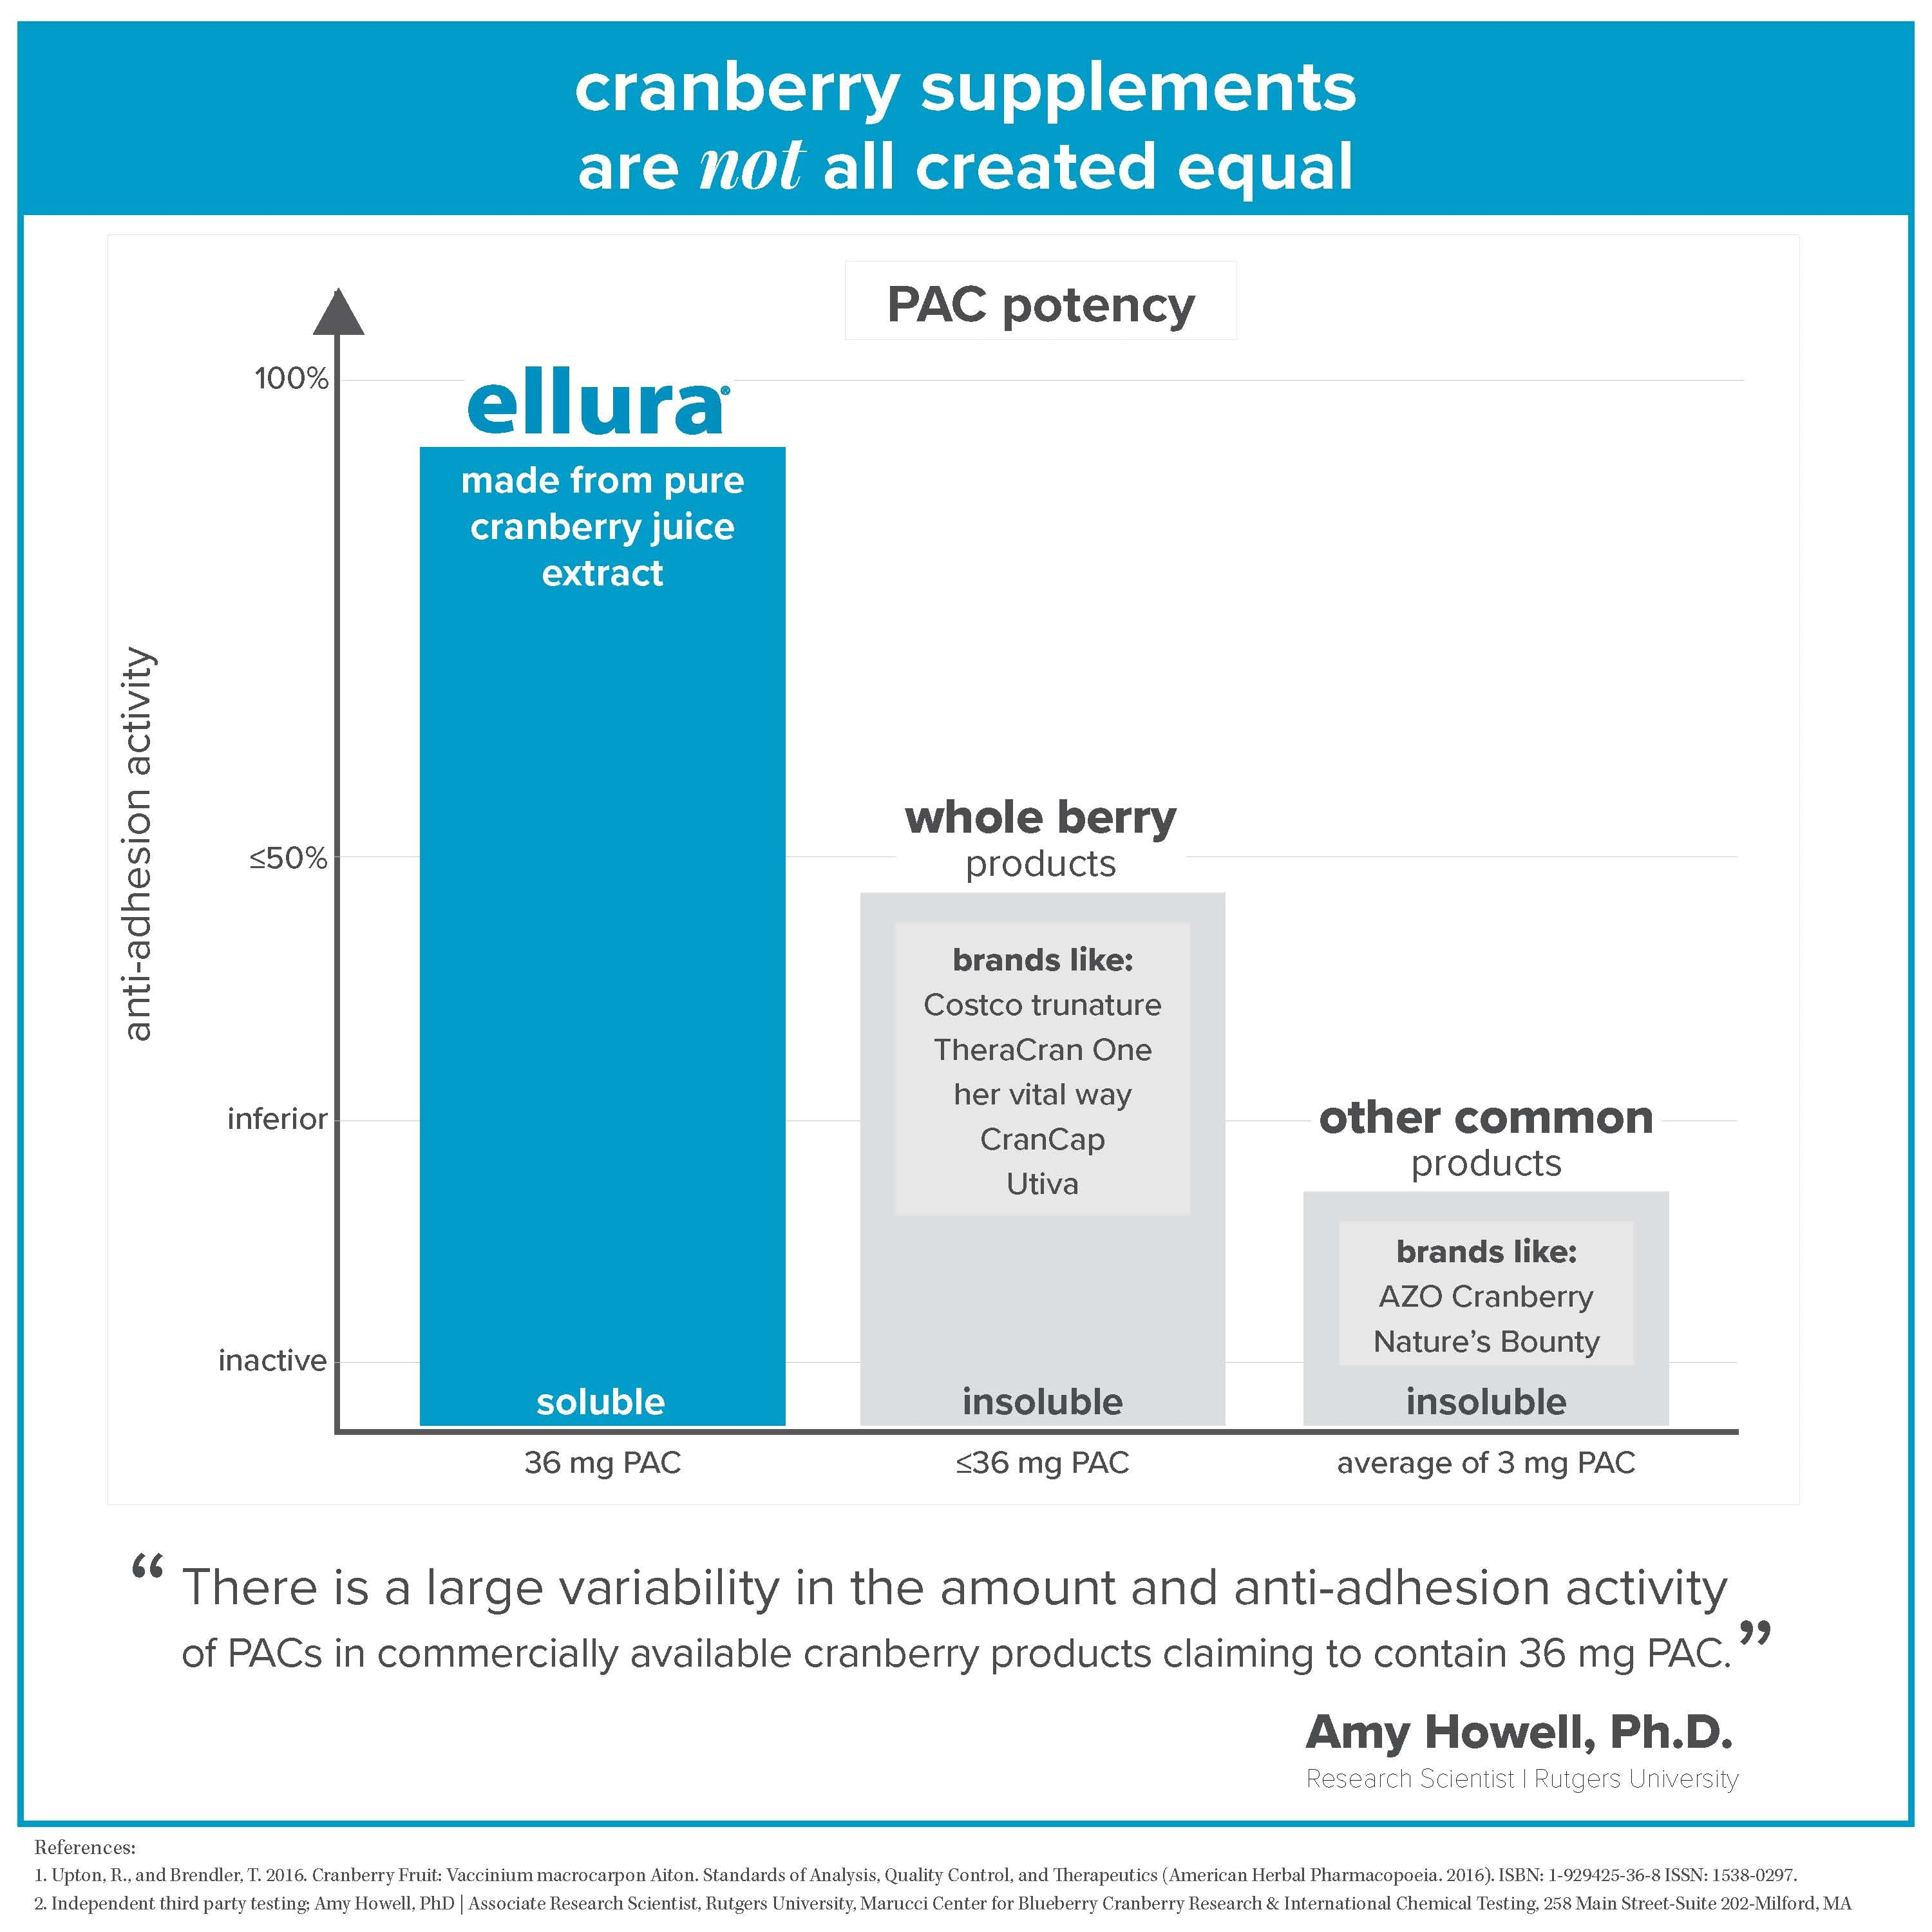 not all cranberry supplements are created equal